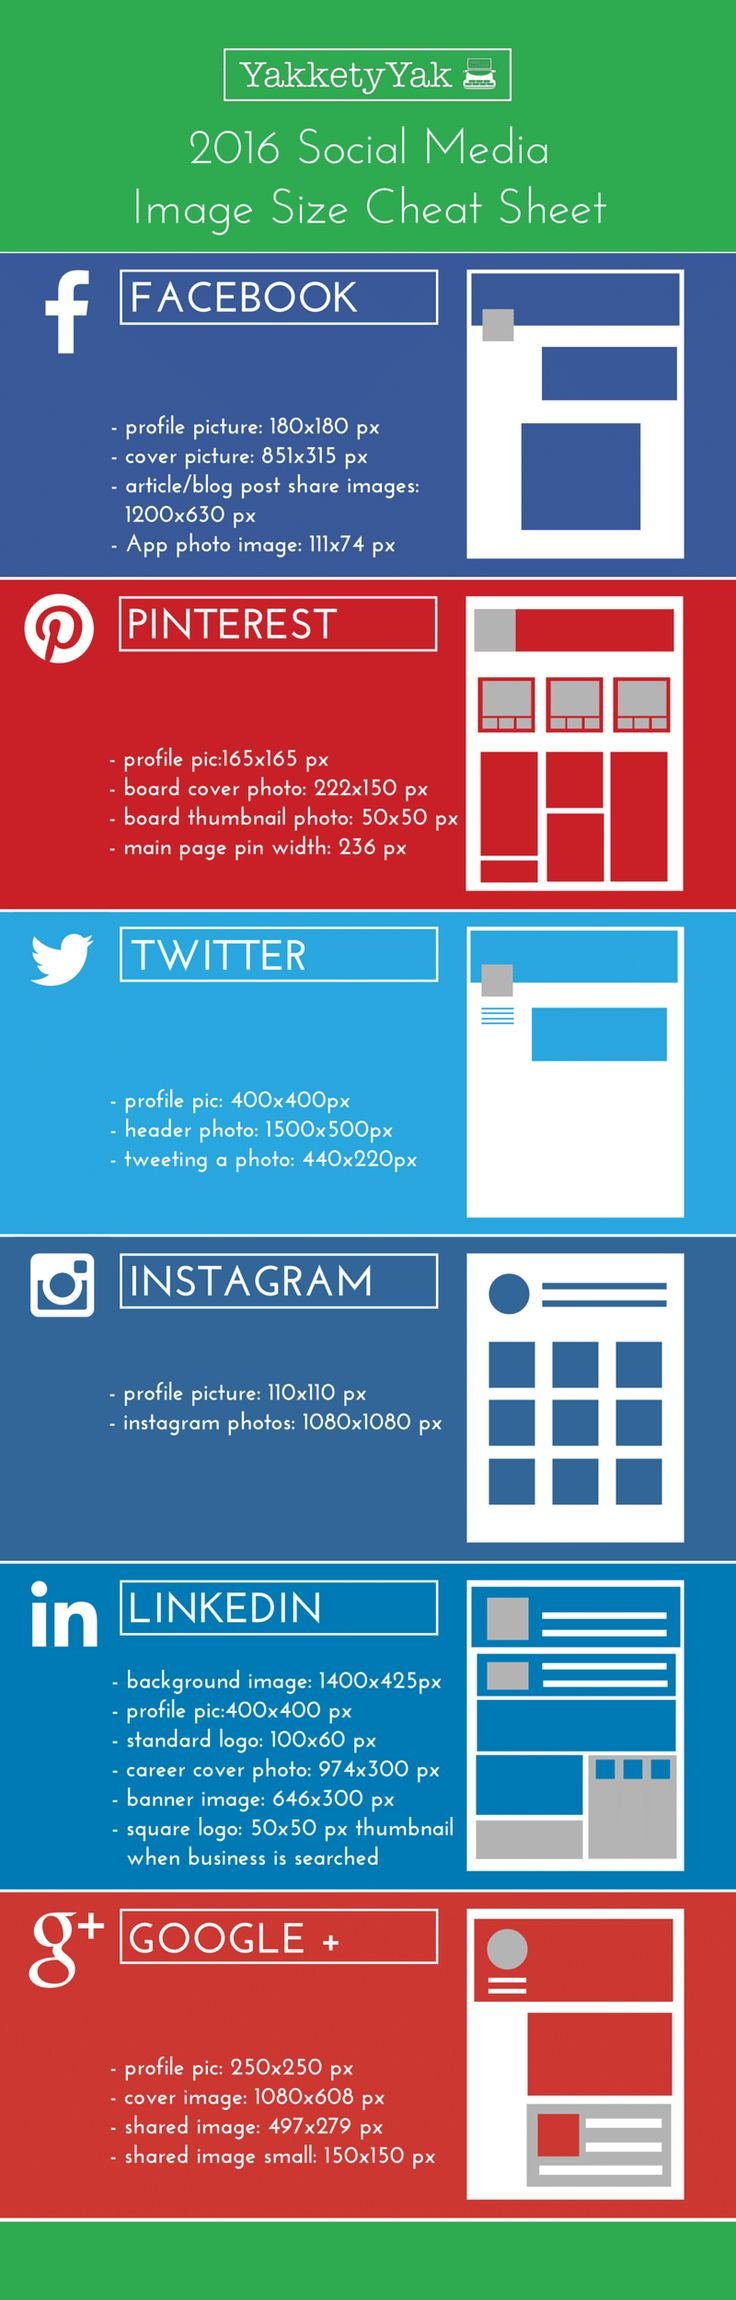 2016 Social Media Image Size Cheat Sheet FACEBOOK - profile picture...